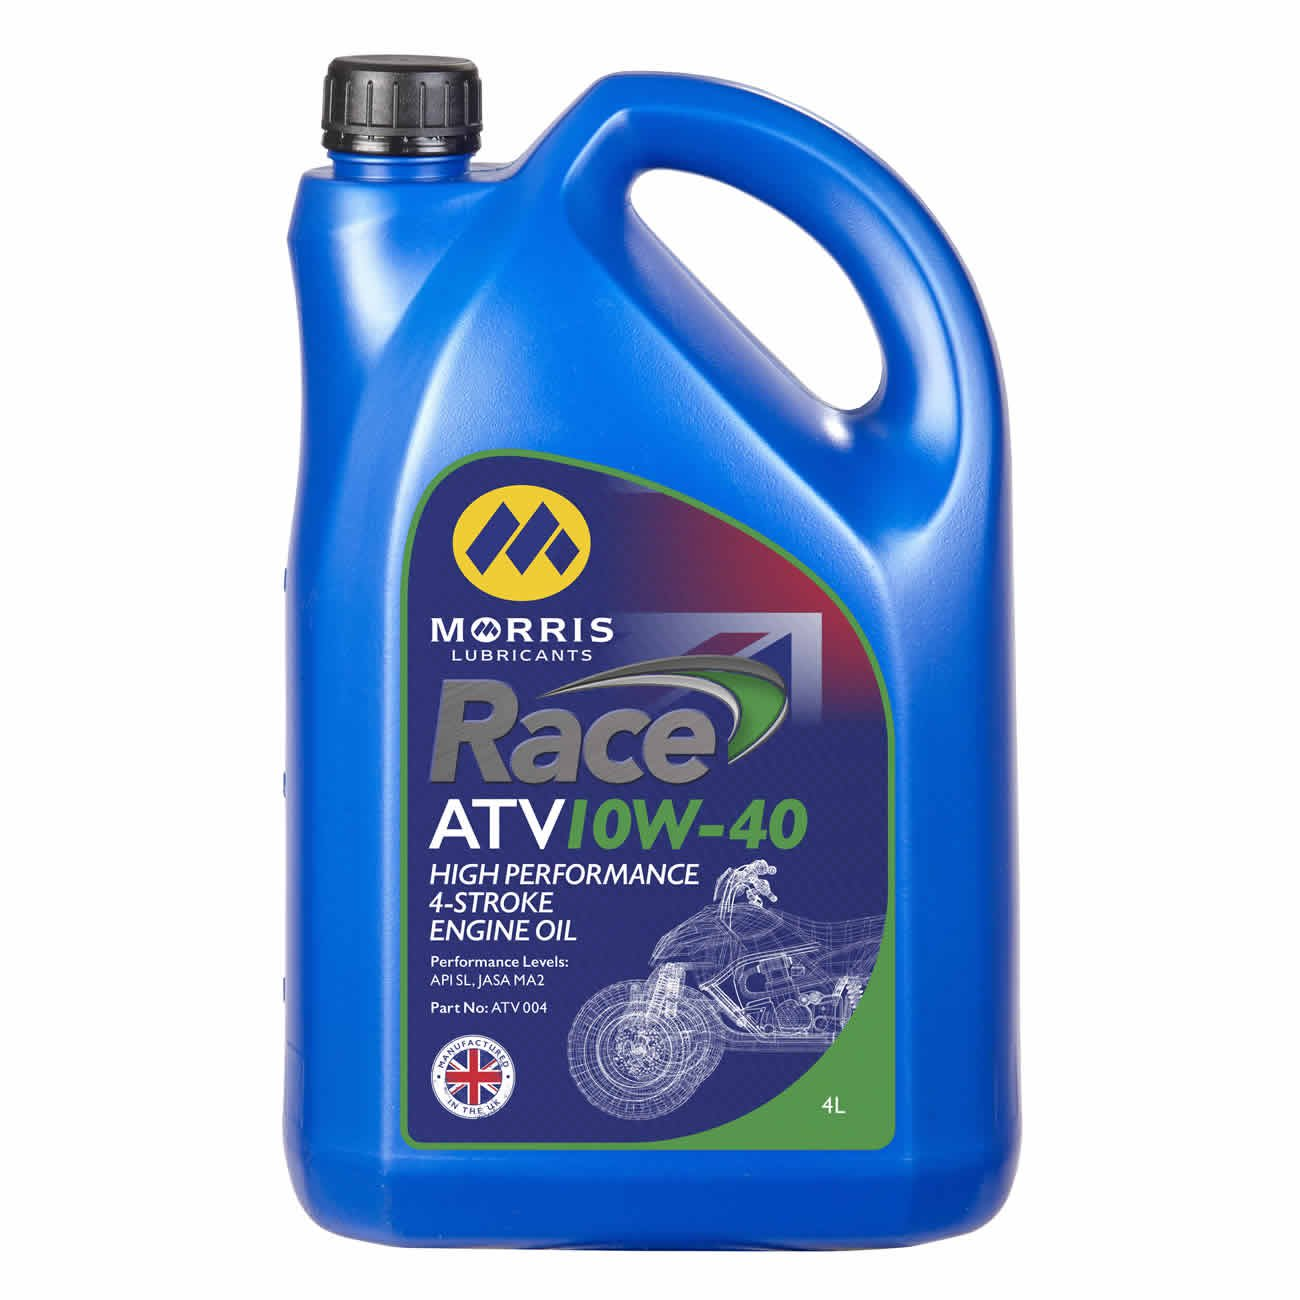 Race ATV 10W-40, Engine Oil, Morris Lubricants - Averys Motorcycles